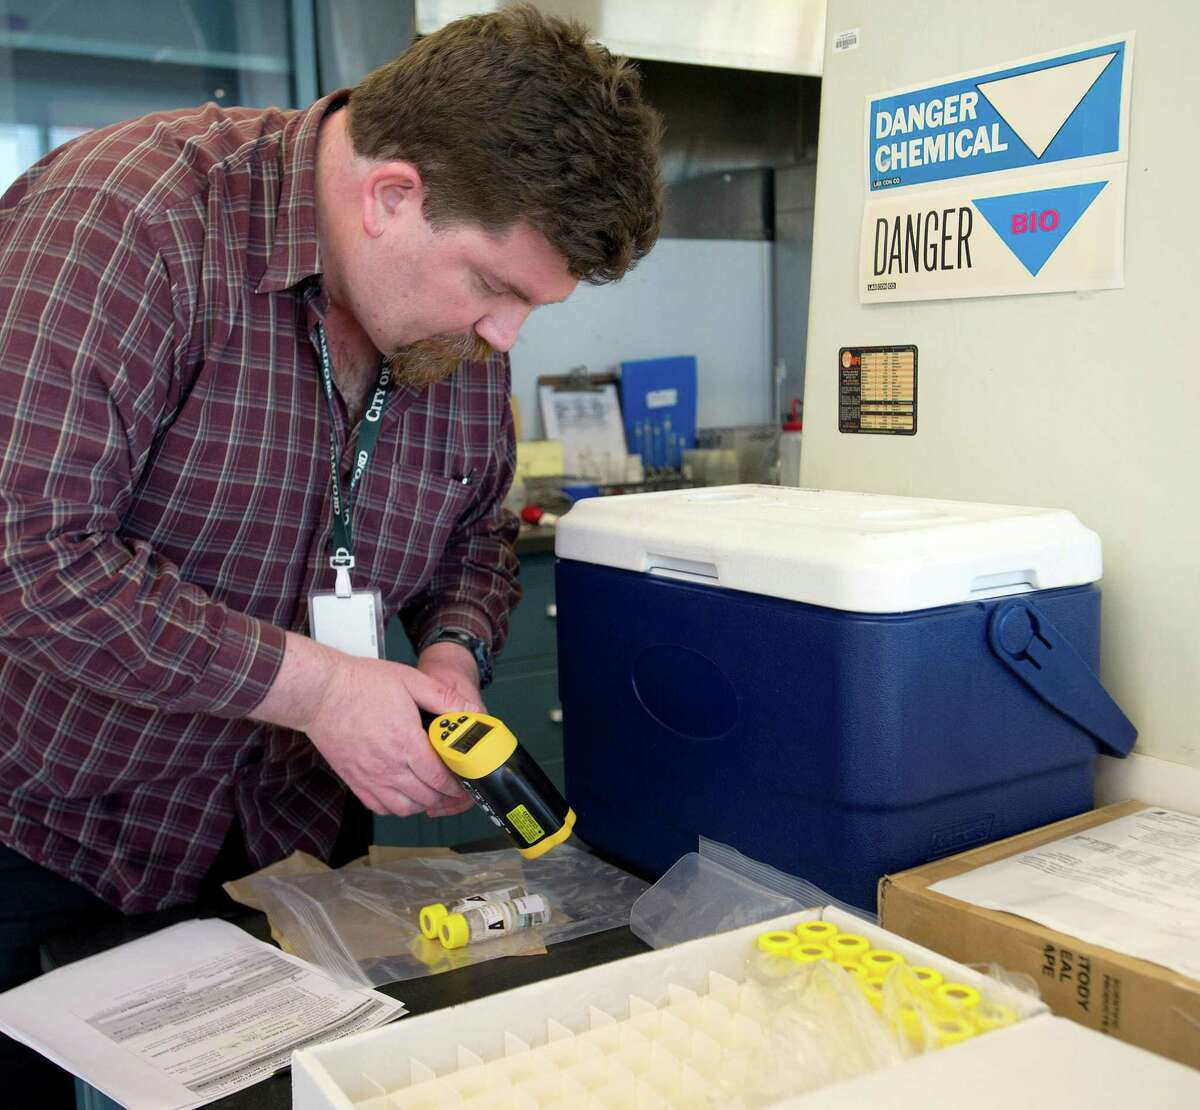 Jason Glenn labels well watersamples to be tested for pesticides, arsenic and uranium at the Heath Department Laboratory at Government Center in Stamford, Conn., on Tuesday, March 18, 2014.